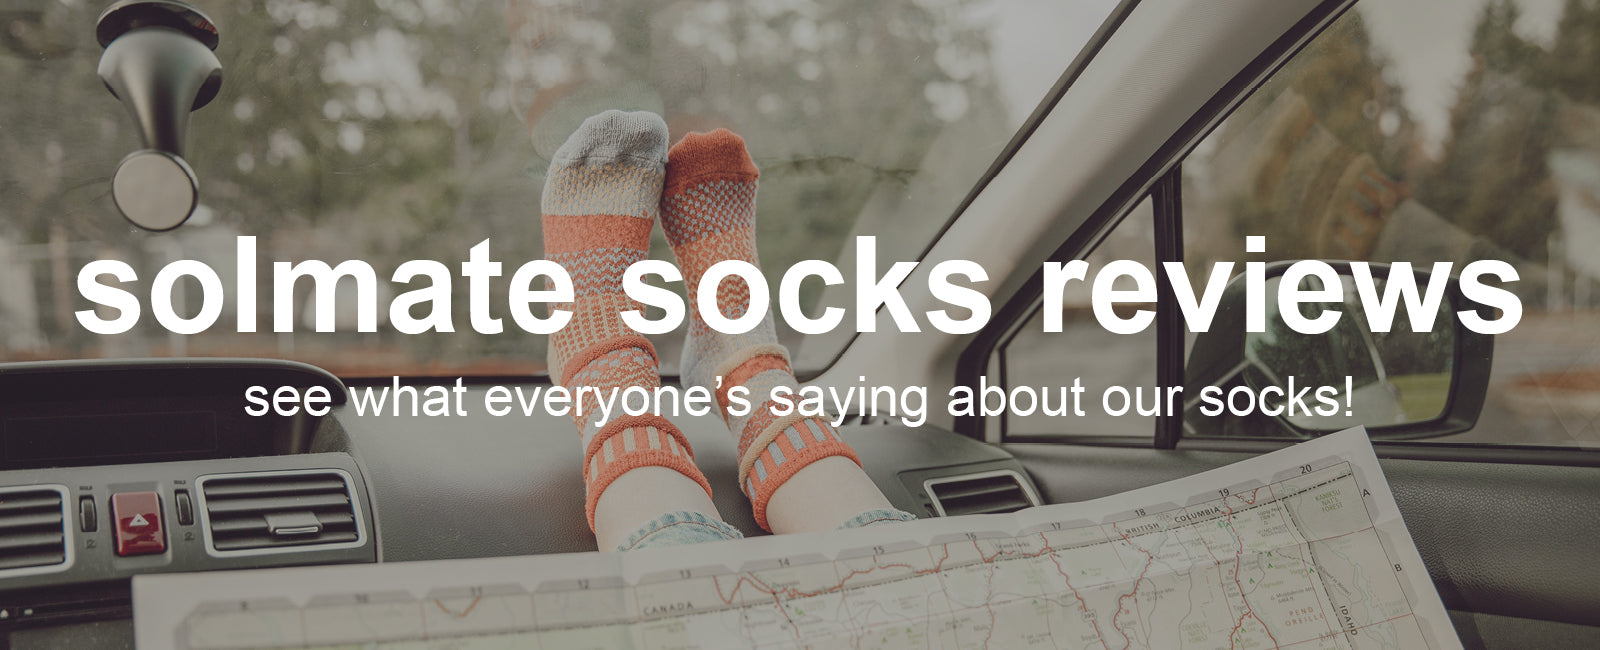 Solmate Socks Reviews